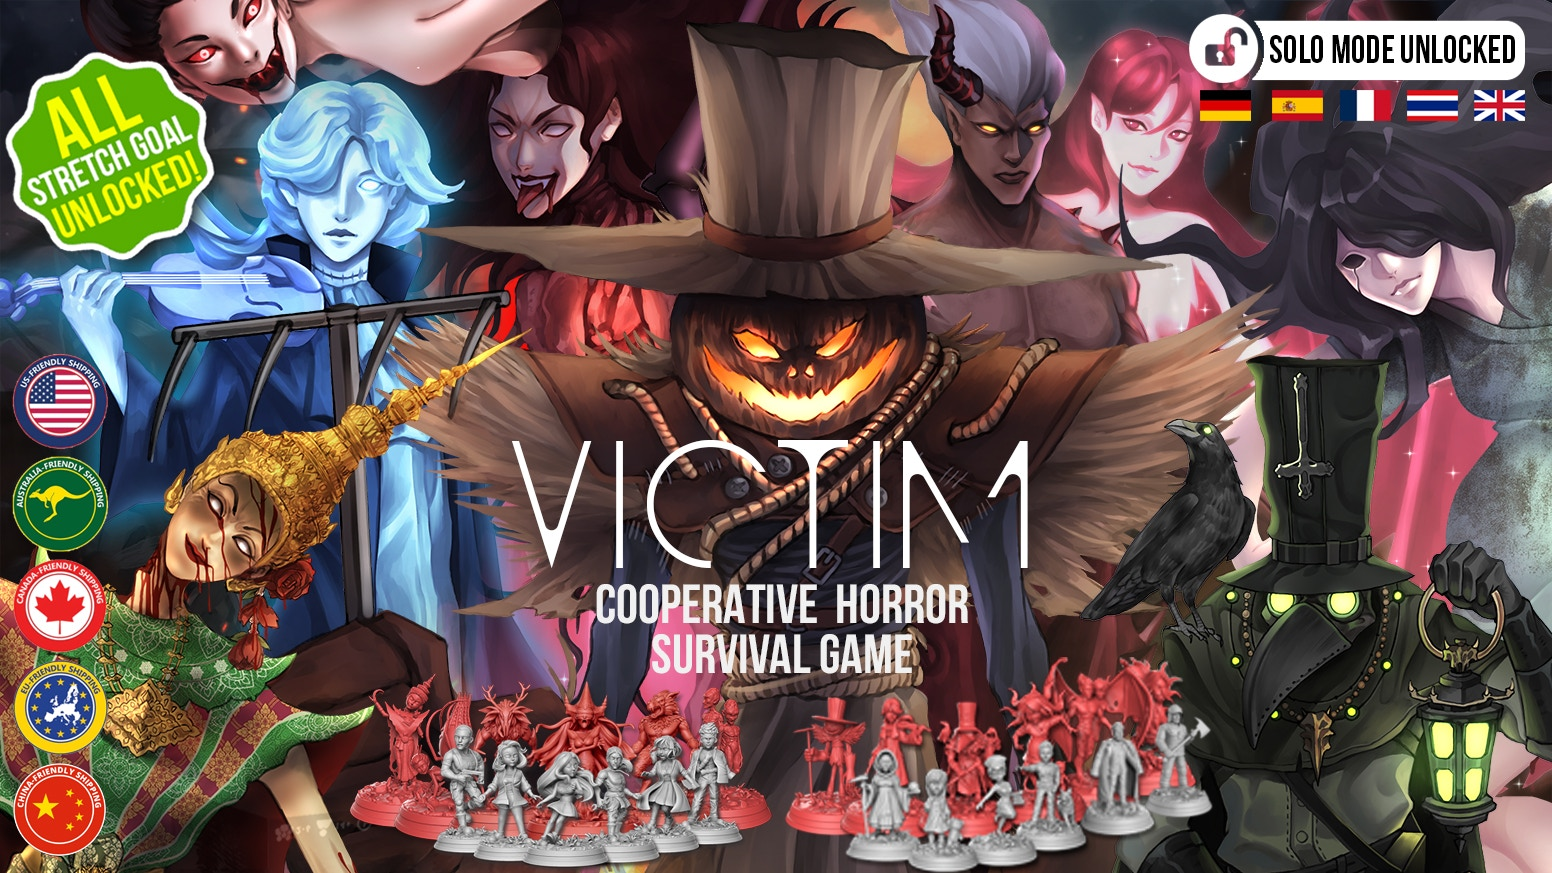 A cooperative horror survival game for 1-6 players. Find a way to survive from the Evil that will possess someone in your group!